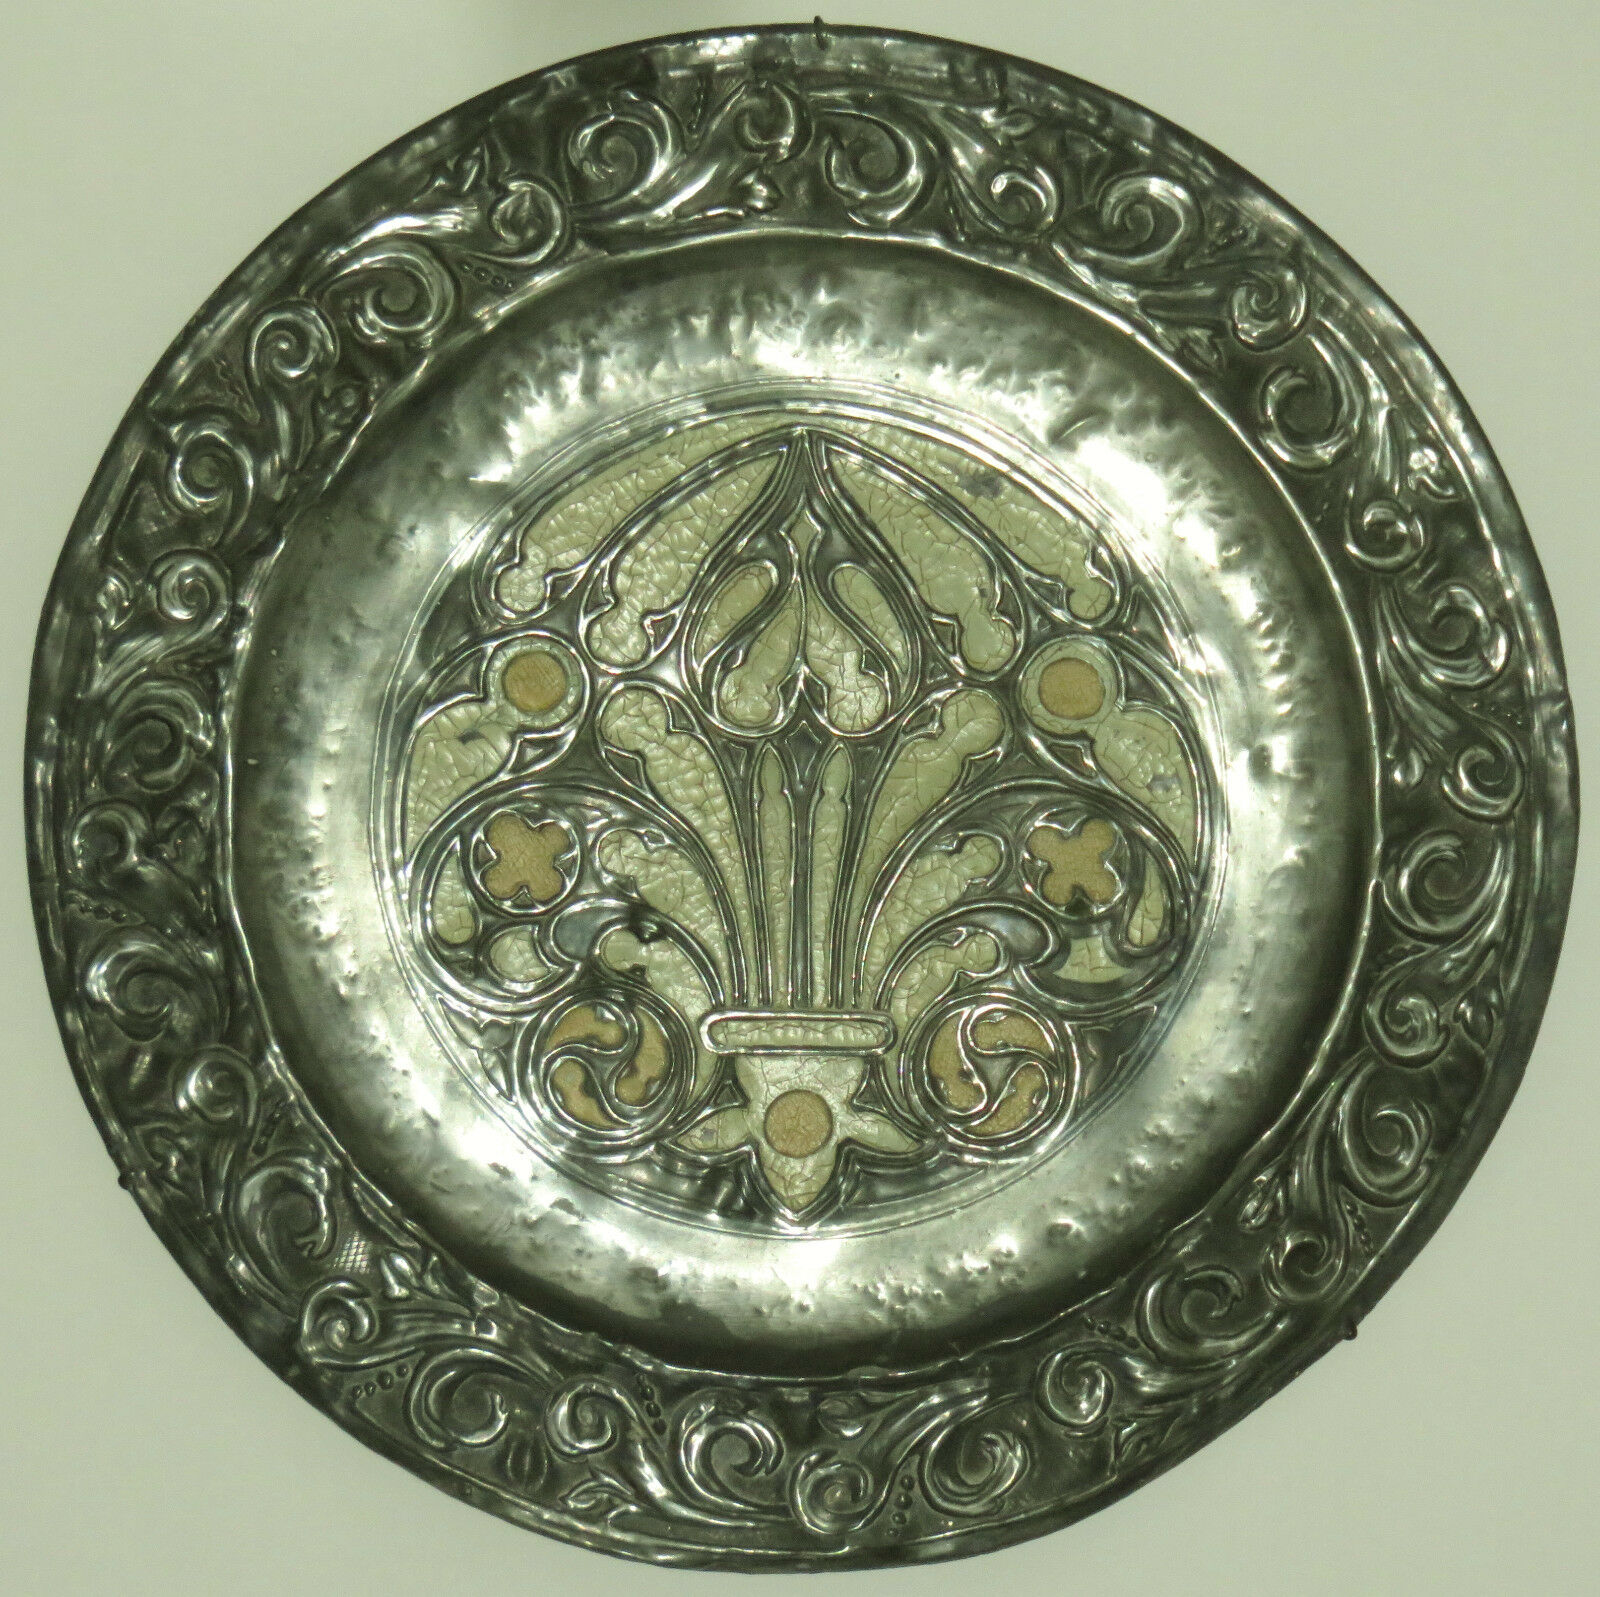 STUNNING LARGE FRENCH GOTHIC CHARGER WALL HANGING PLATE PLAQUE REPOUSSE 20 ins